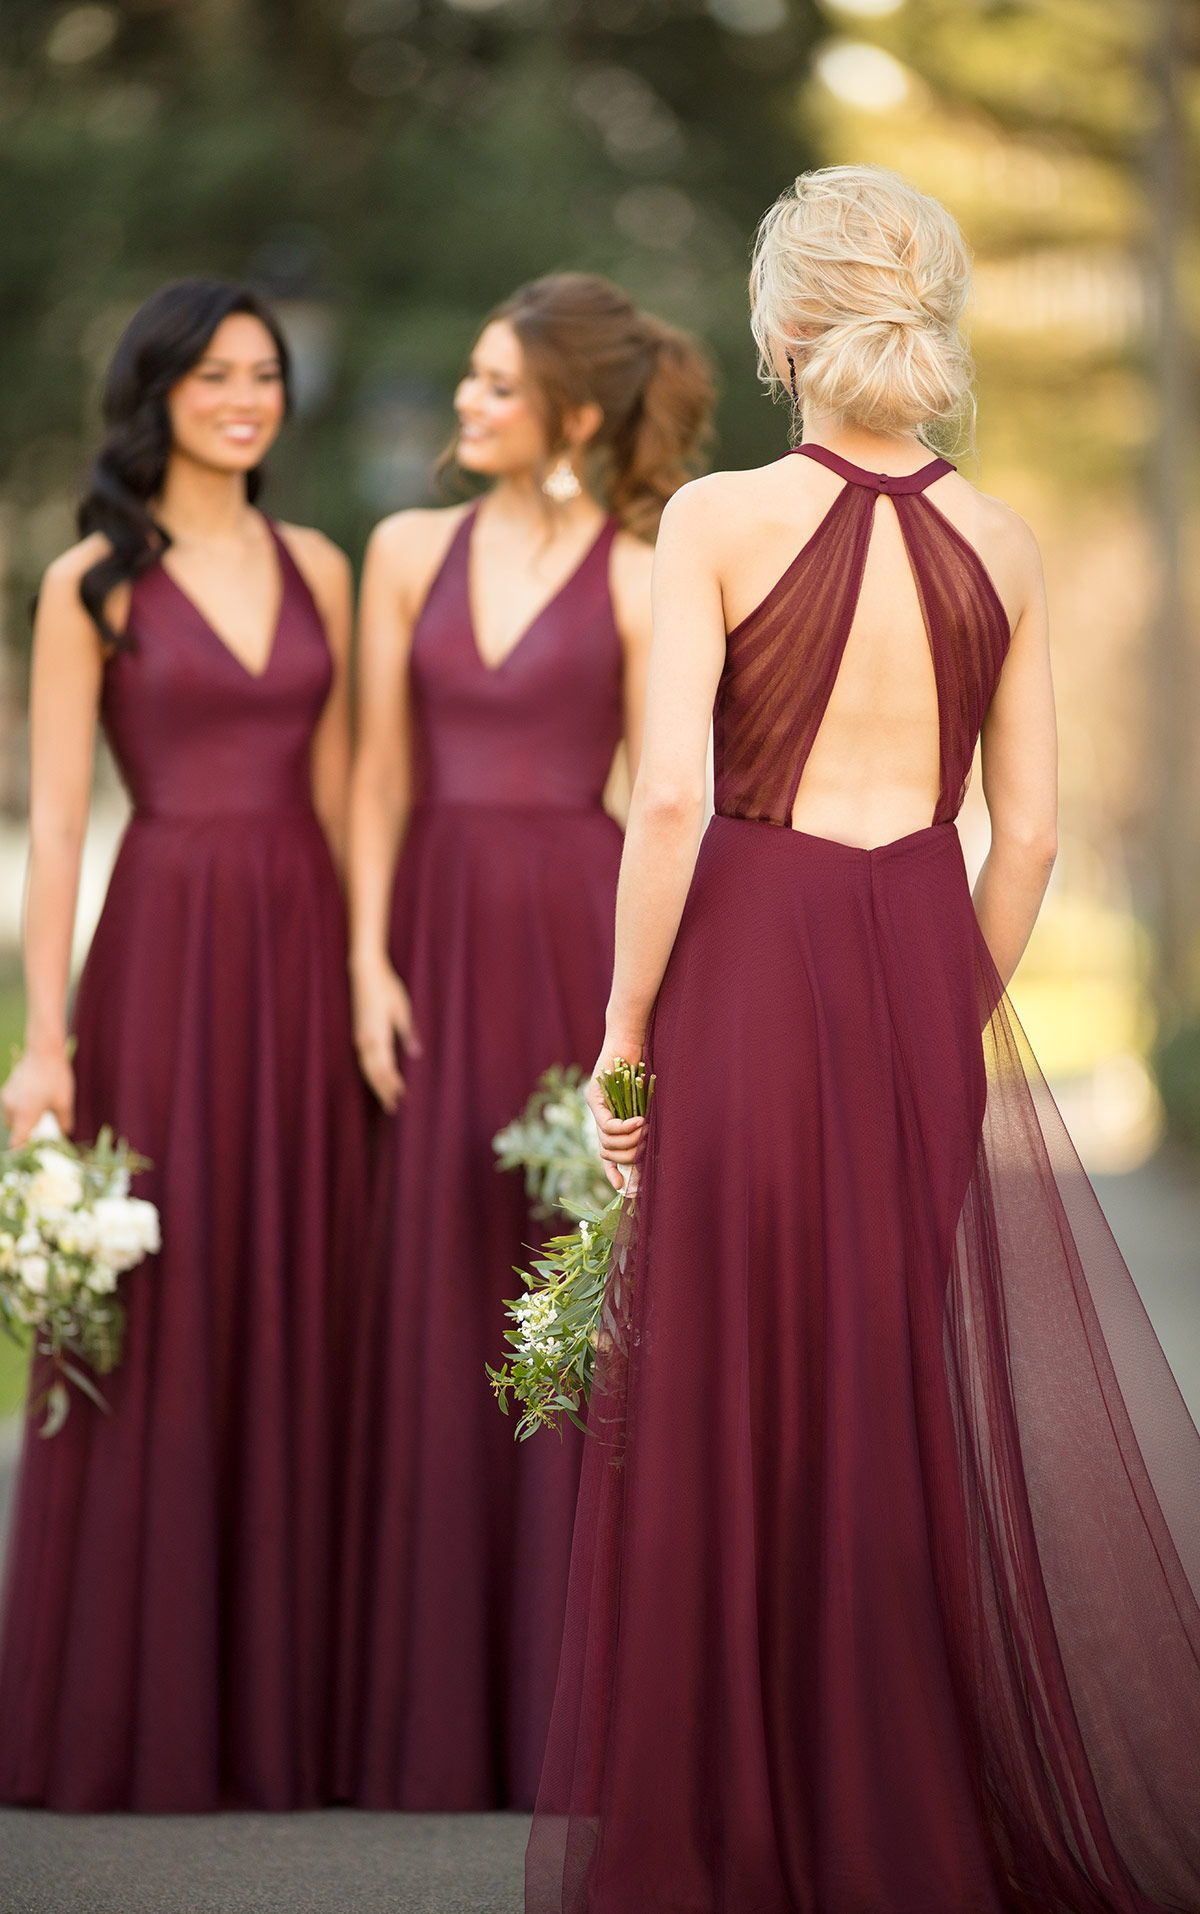 2019 Wedding Colors Trend Wine Bridesmaid Dresses Wedding Weddinginspirat Wine Bridesmaid Dresses Christmas Bridesmaid Dresses Wine Color Bridesmaid Dress